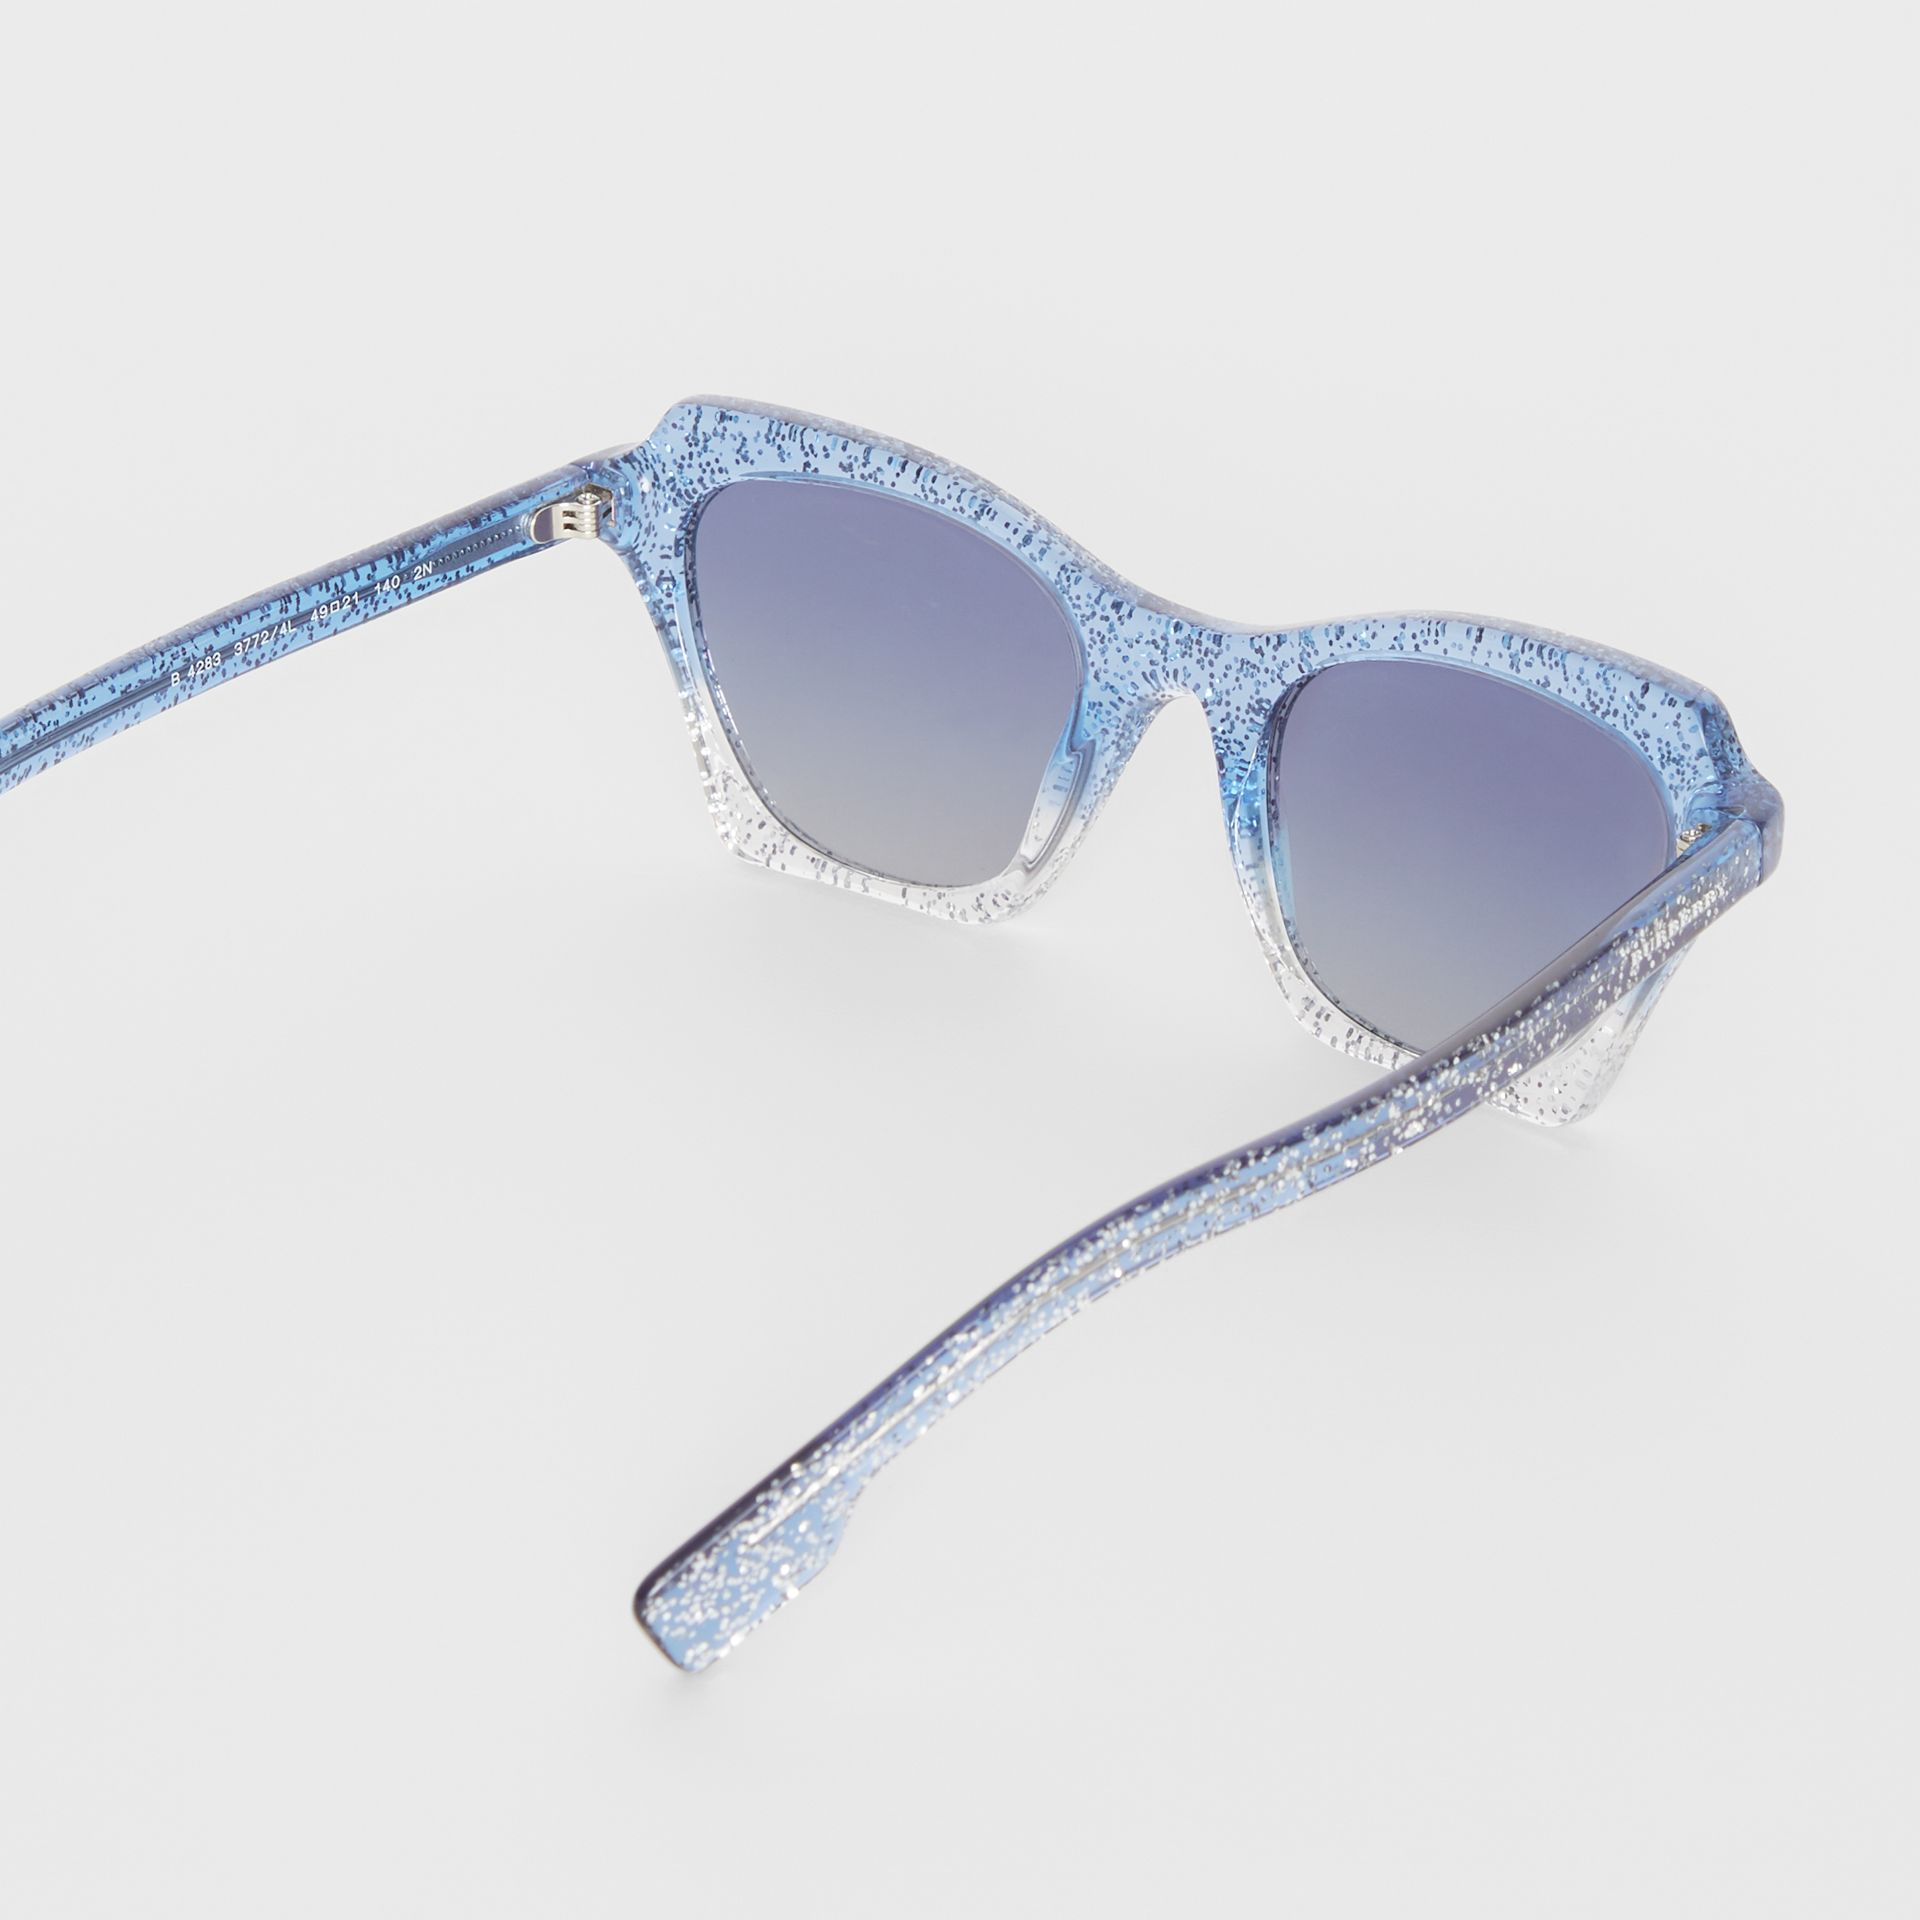 Butterfly Frame Sunglasses in Blue - Women | Burberry - gallery image 3